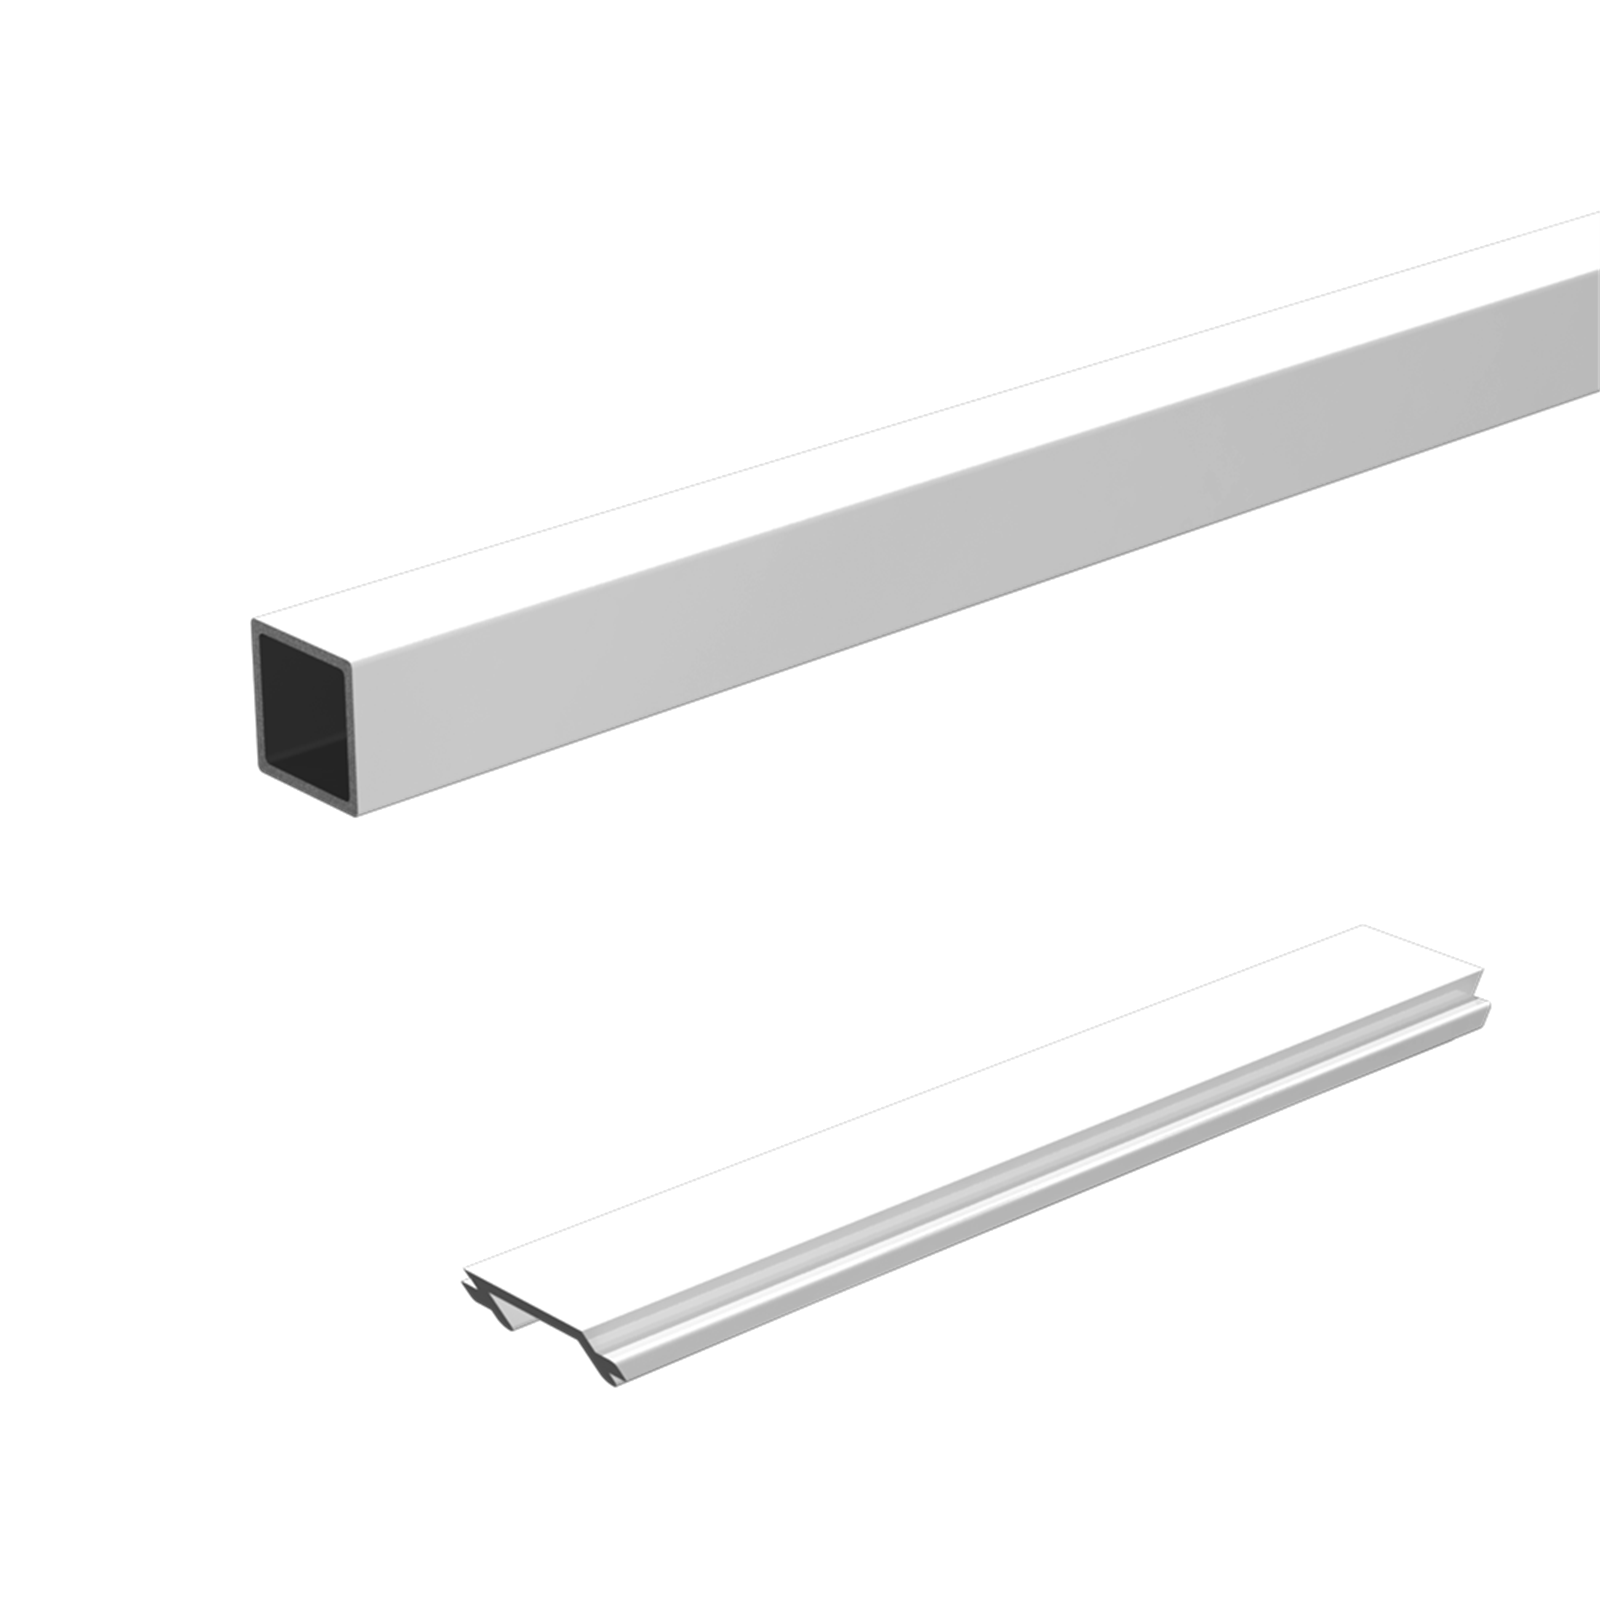 Peak Products 1800mm White Aluminium Balustrade Standard Stair Baluster And Spacer Kit